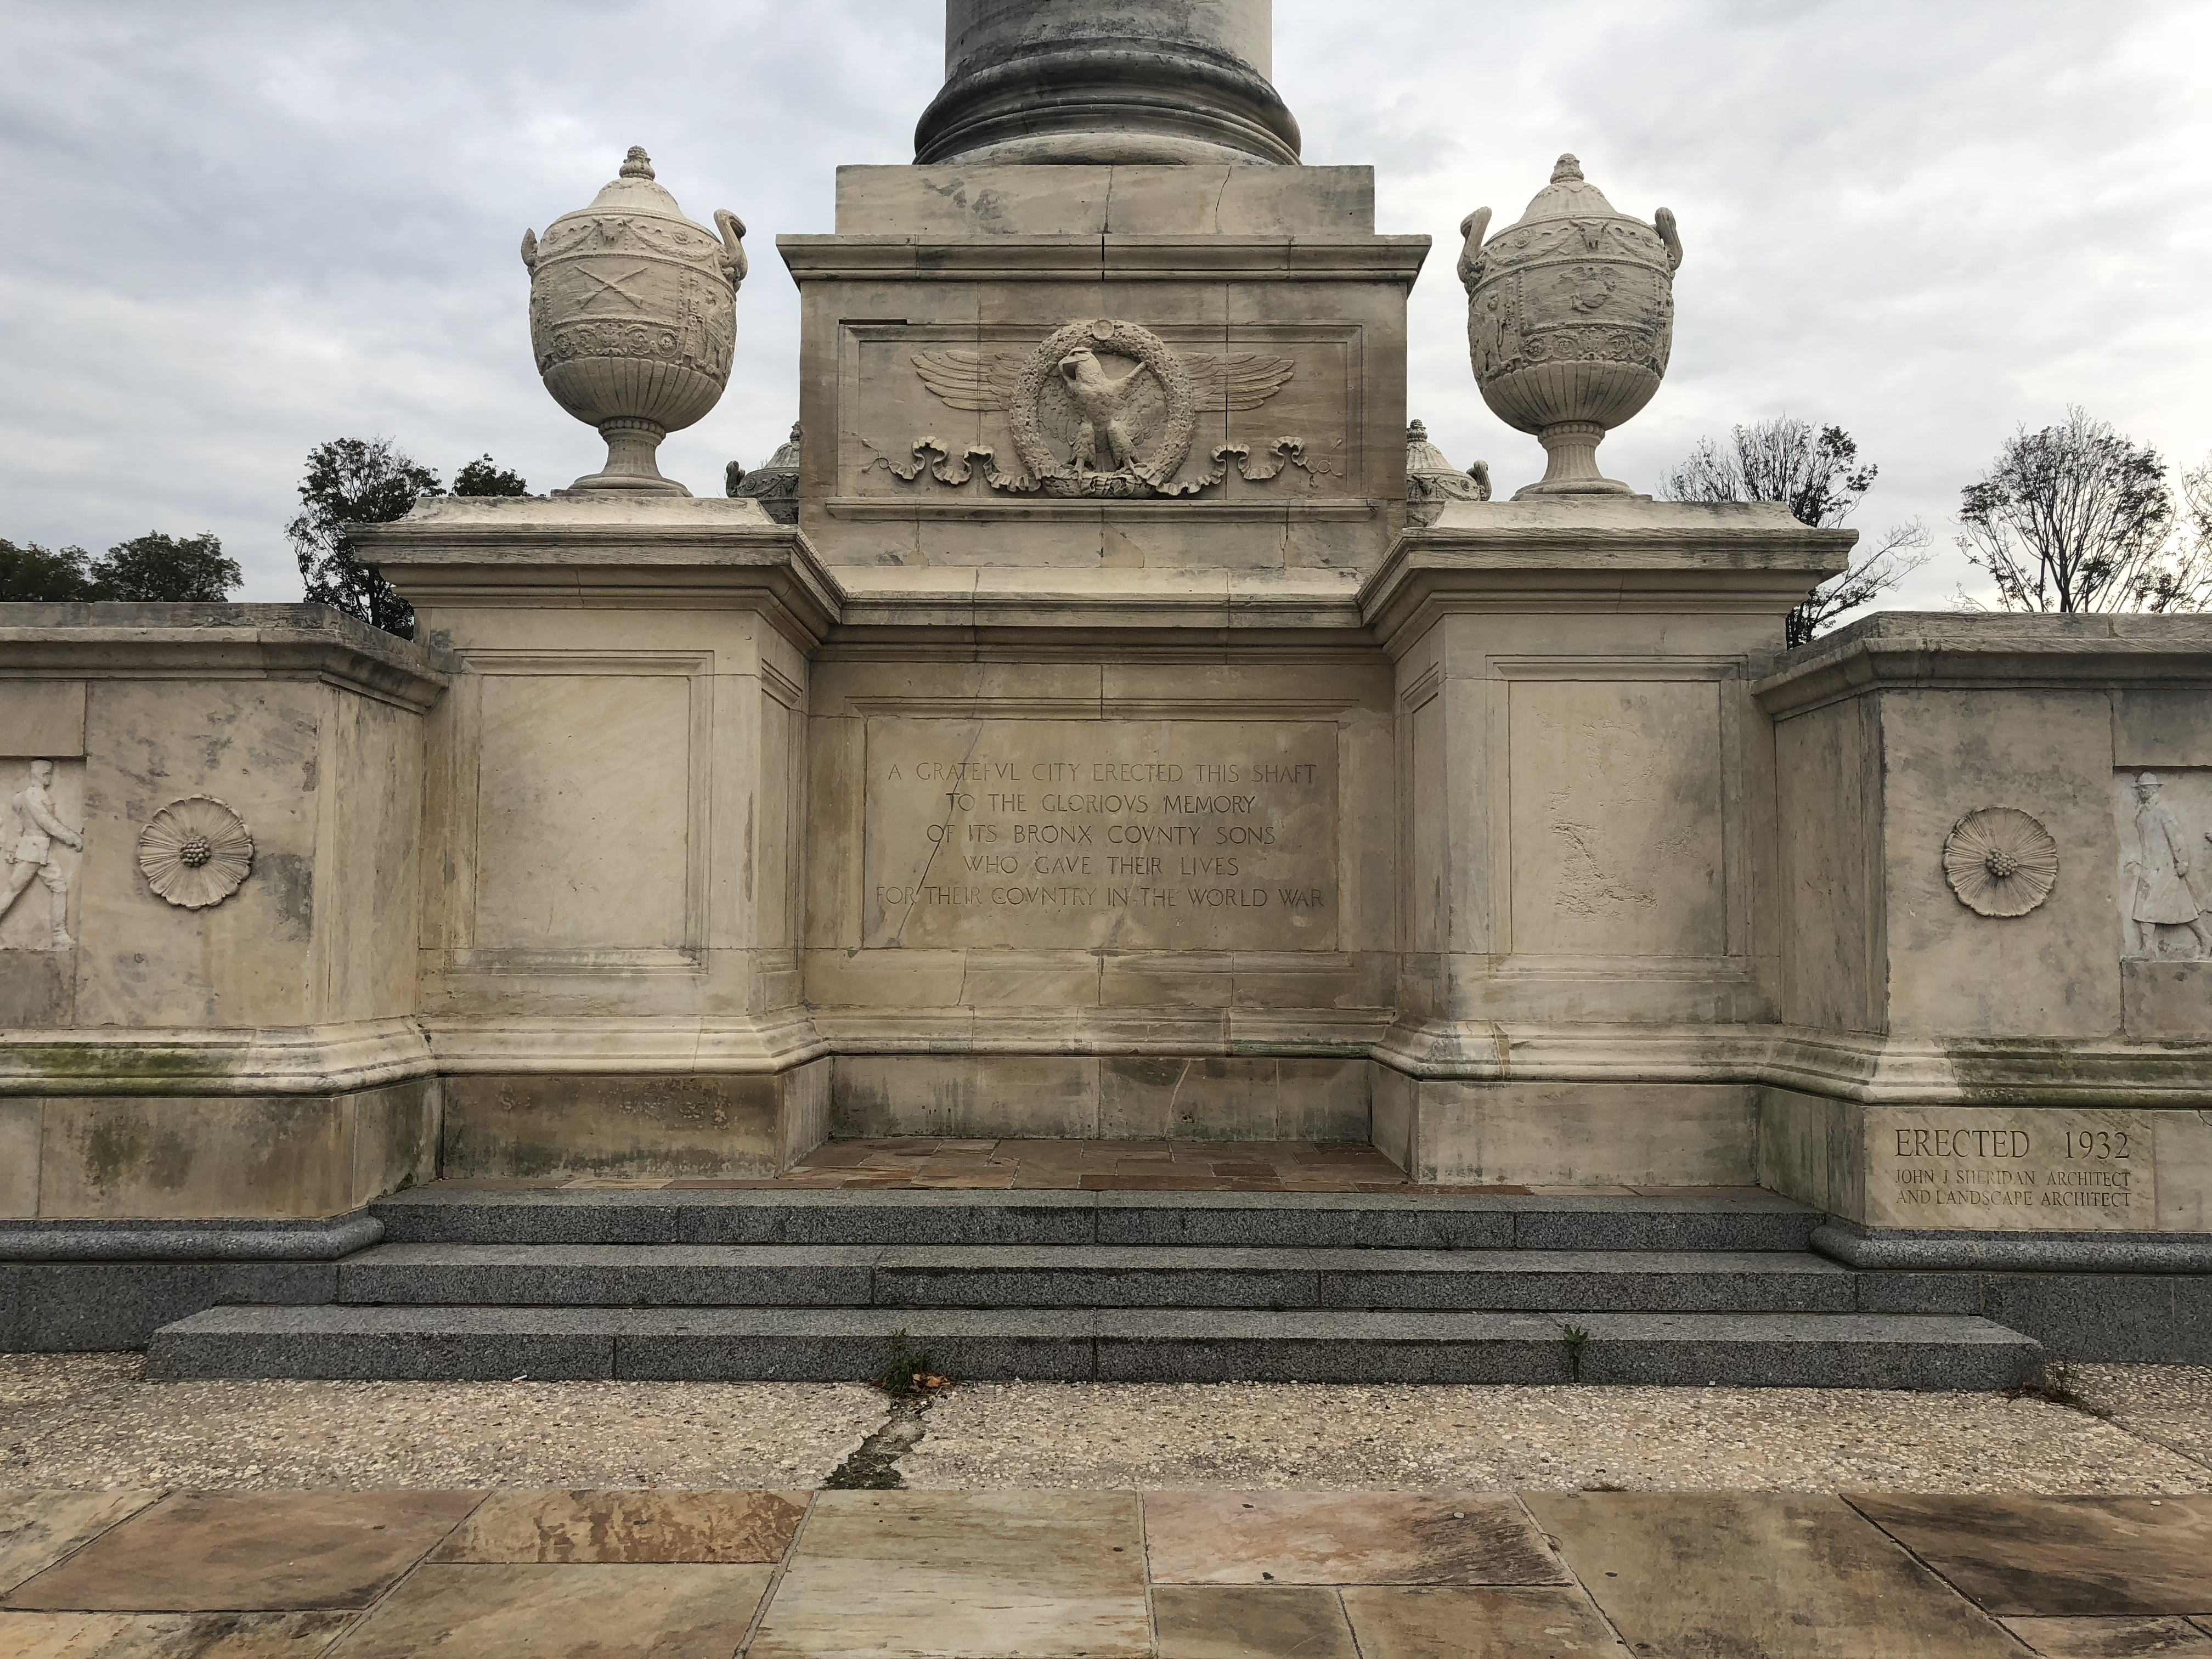 "The base of the monument reads: ""A GRATEFUL CITY ERECTED THIS SHAFT TO THE GLORIOUS MEMORY OF ITS BRONX COUNTY SONS WHO GAVE THEIR LIVES FOR THEIR COUNTRY IN THE WORLD WAR"""